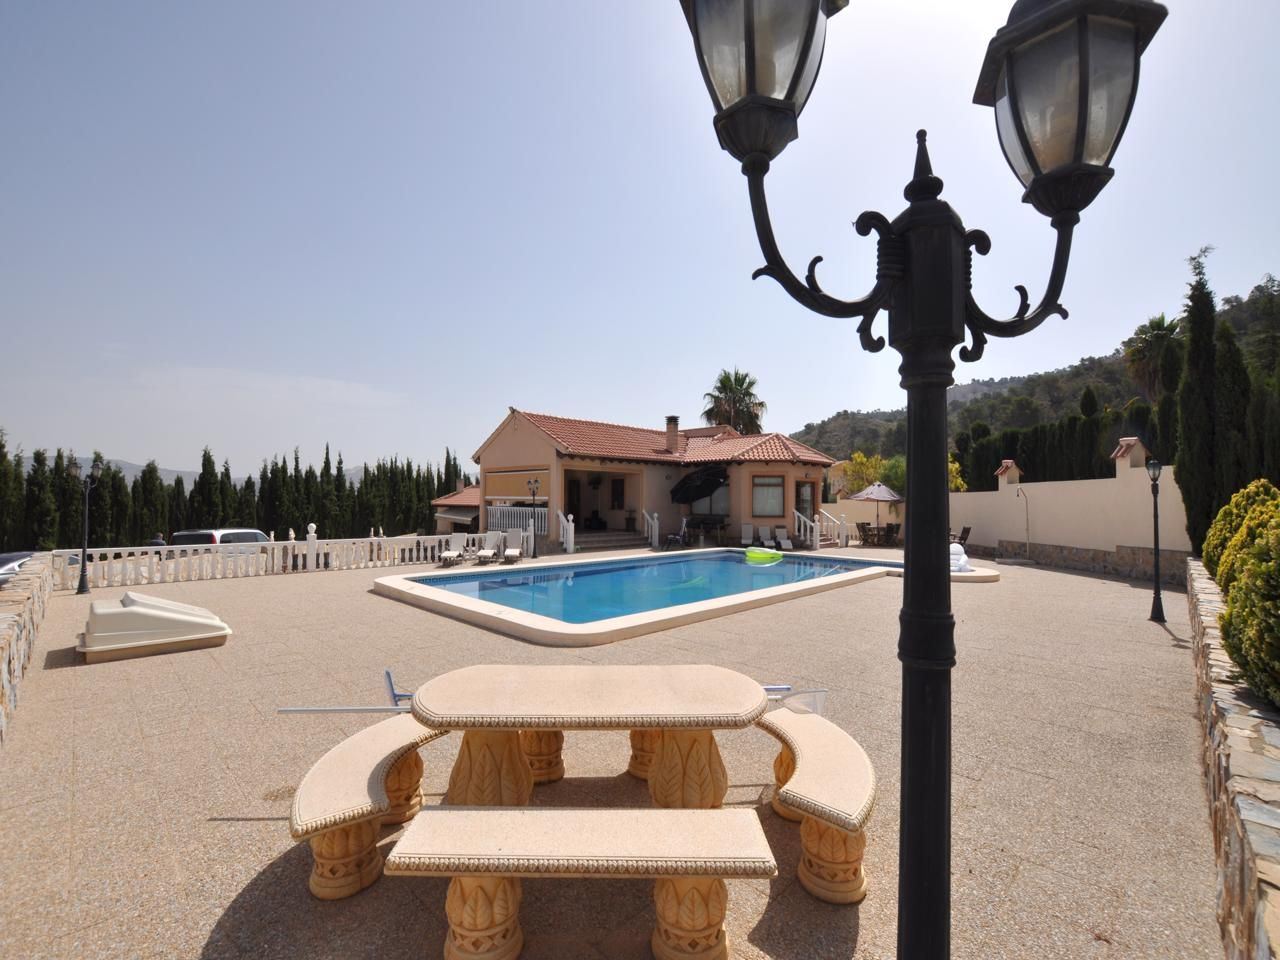 3 Bed Luxury Villa With Swimming Pool And Garage